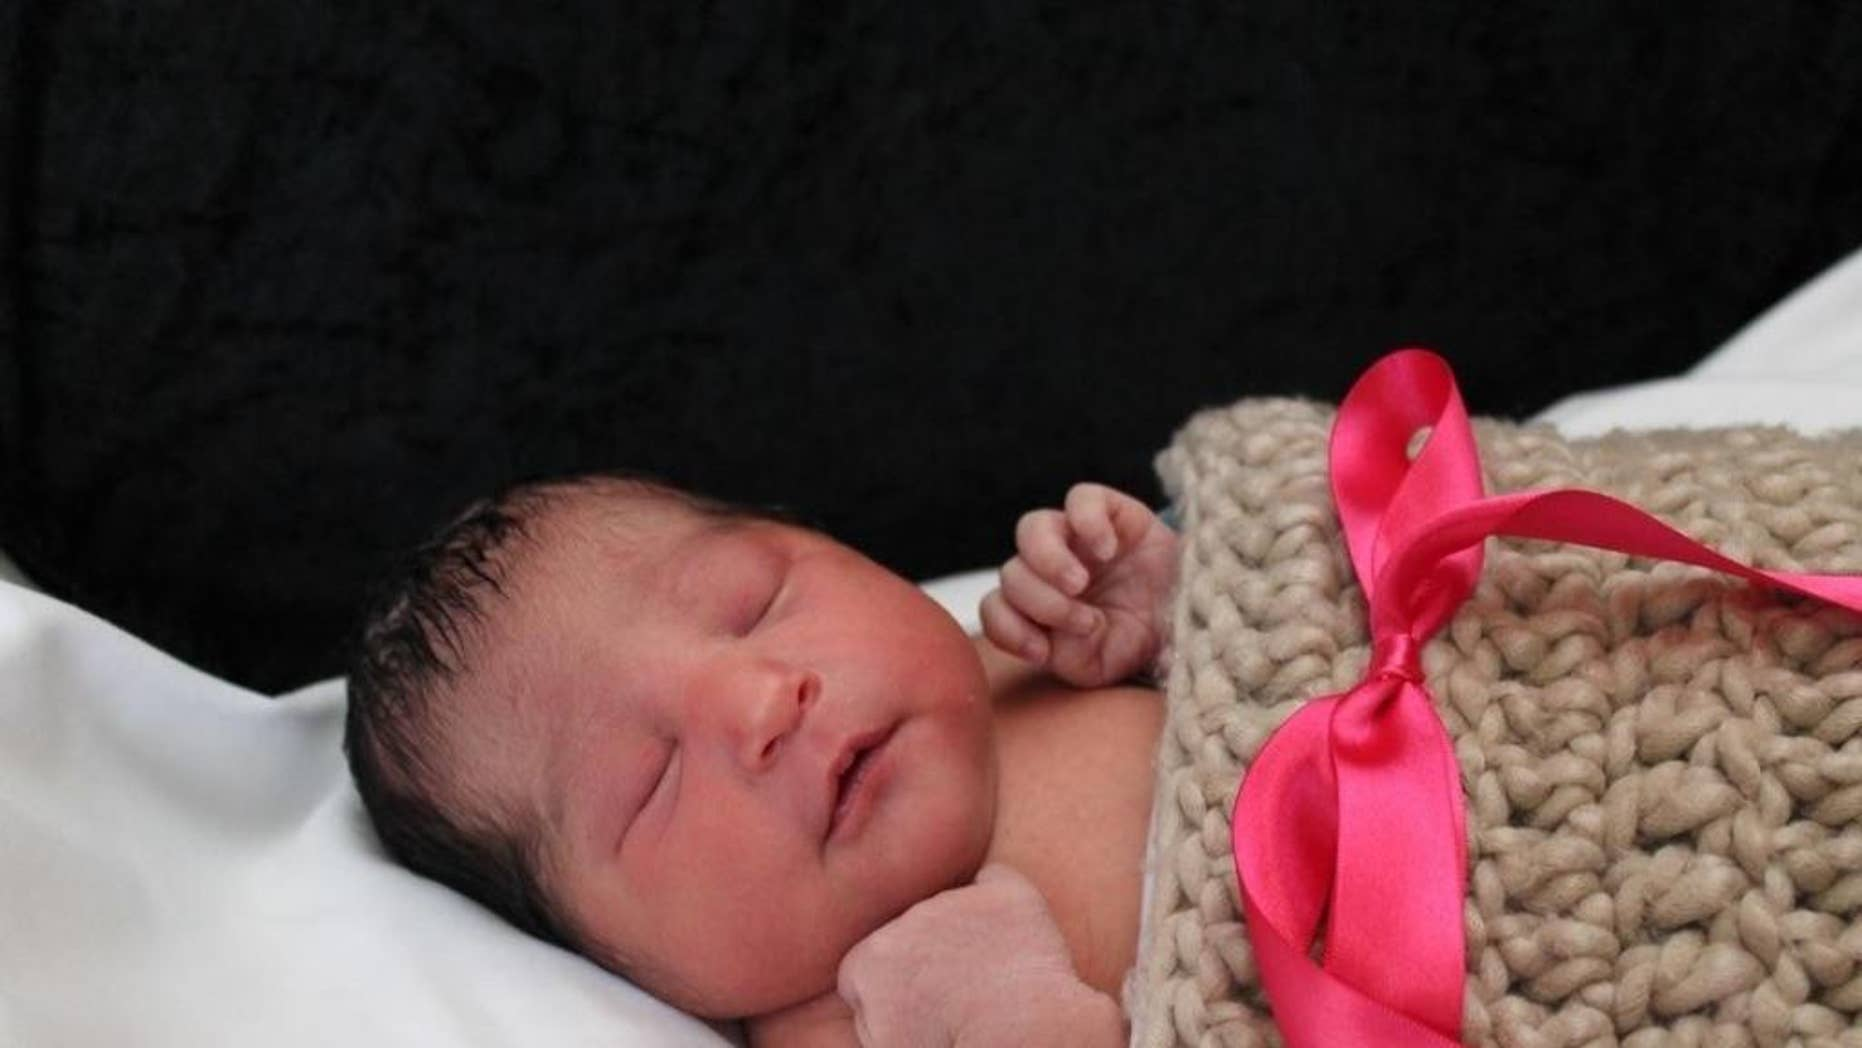 """This photo provided by the Wichita Police shows Sofia Victoria Gonzalez Abarca, a missing week-old baby in Wichita, Kan.   Authorities are searching for the missing week-old baby after her mother was found fatally shot in Wichita.  A relative found the woman dead Thursday, Nov. 17, 2016,  in her apartment. Sgt. Nikki Woodrow says the woman's daughter, Sofia Victoria Gonzalez Abarca, is """"considered missing and endangered.""""   (Wichita Police via AP)"""